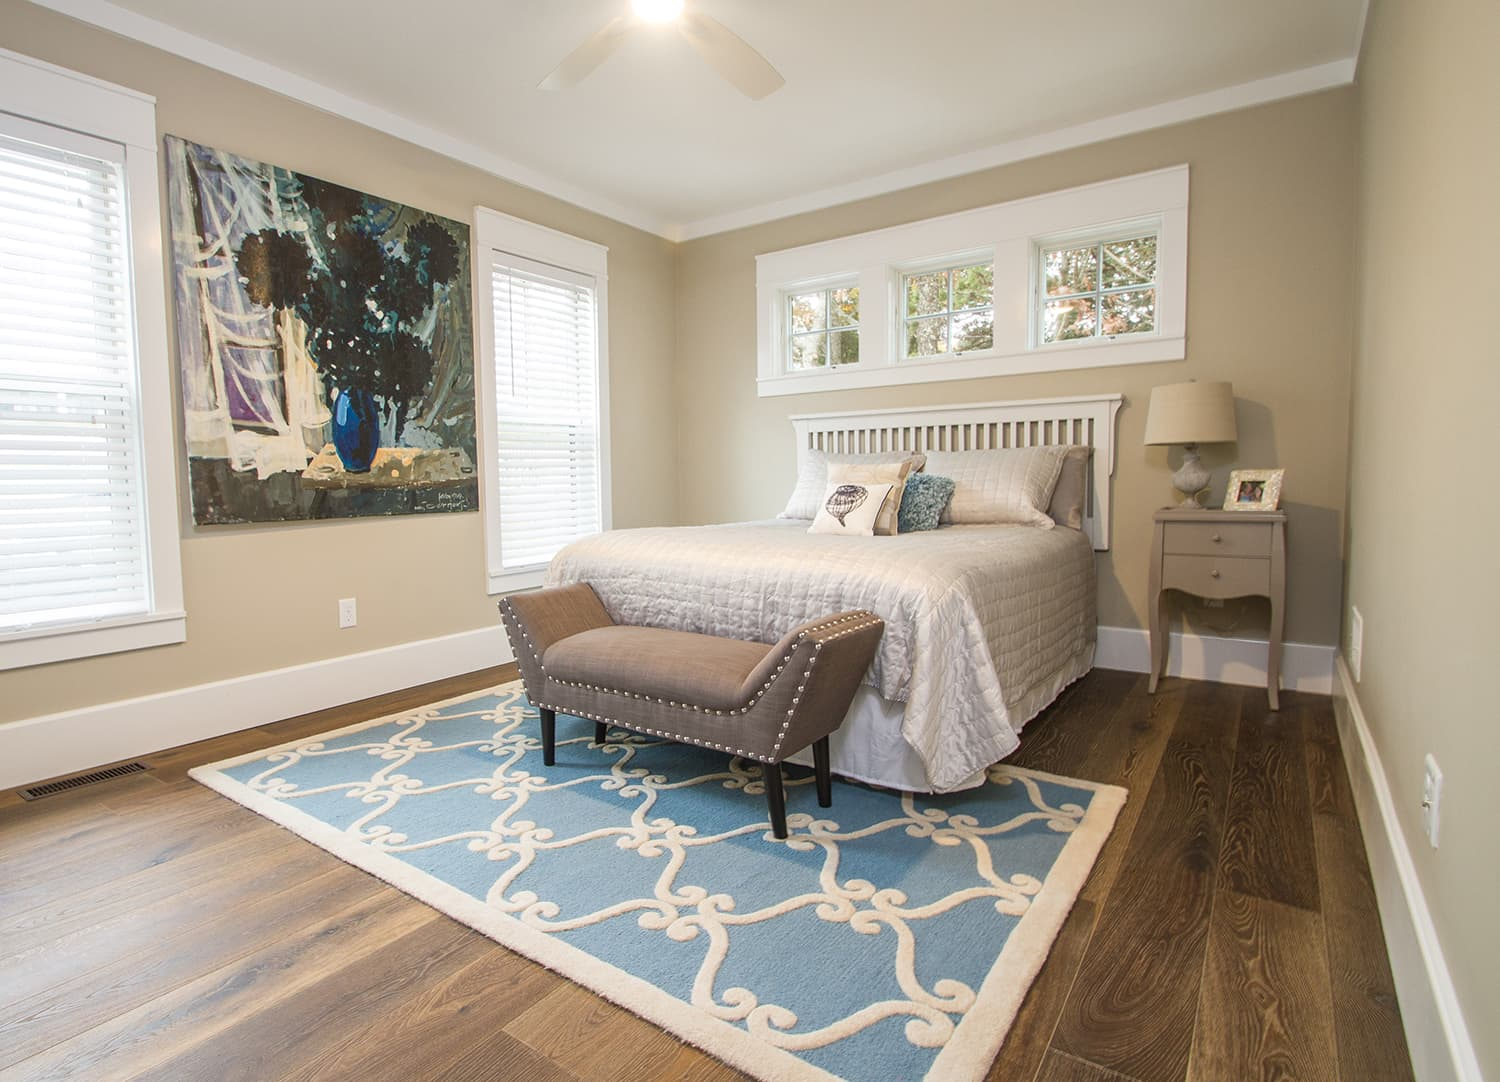 Esplanade Floors featured in one of the bedrooms of the Bay Side Beach House